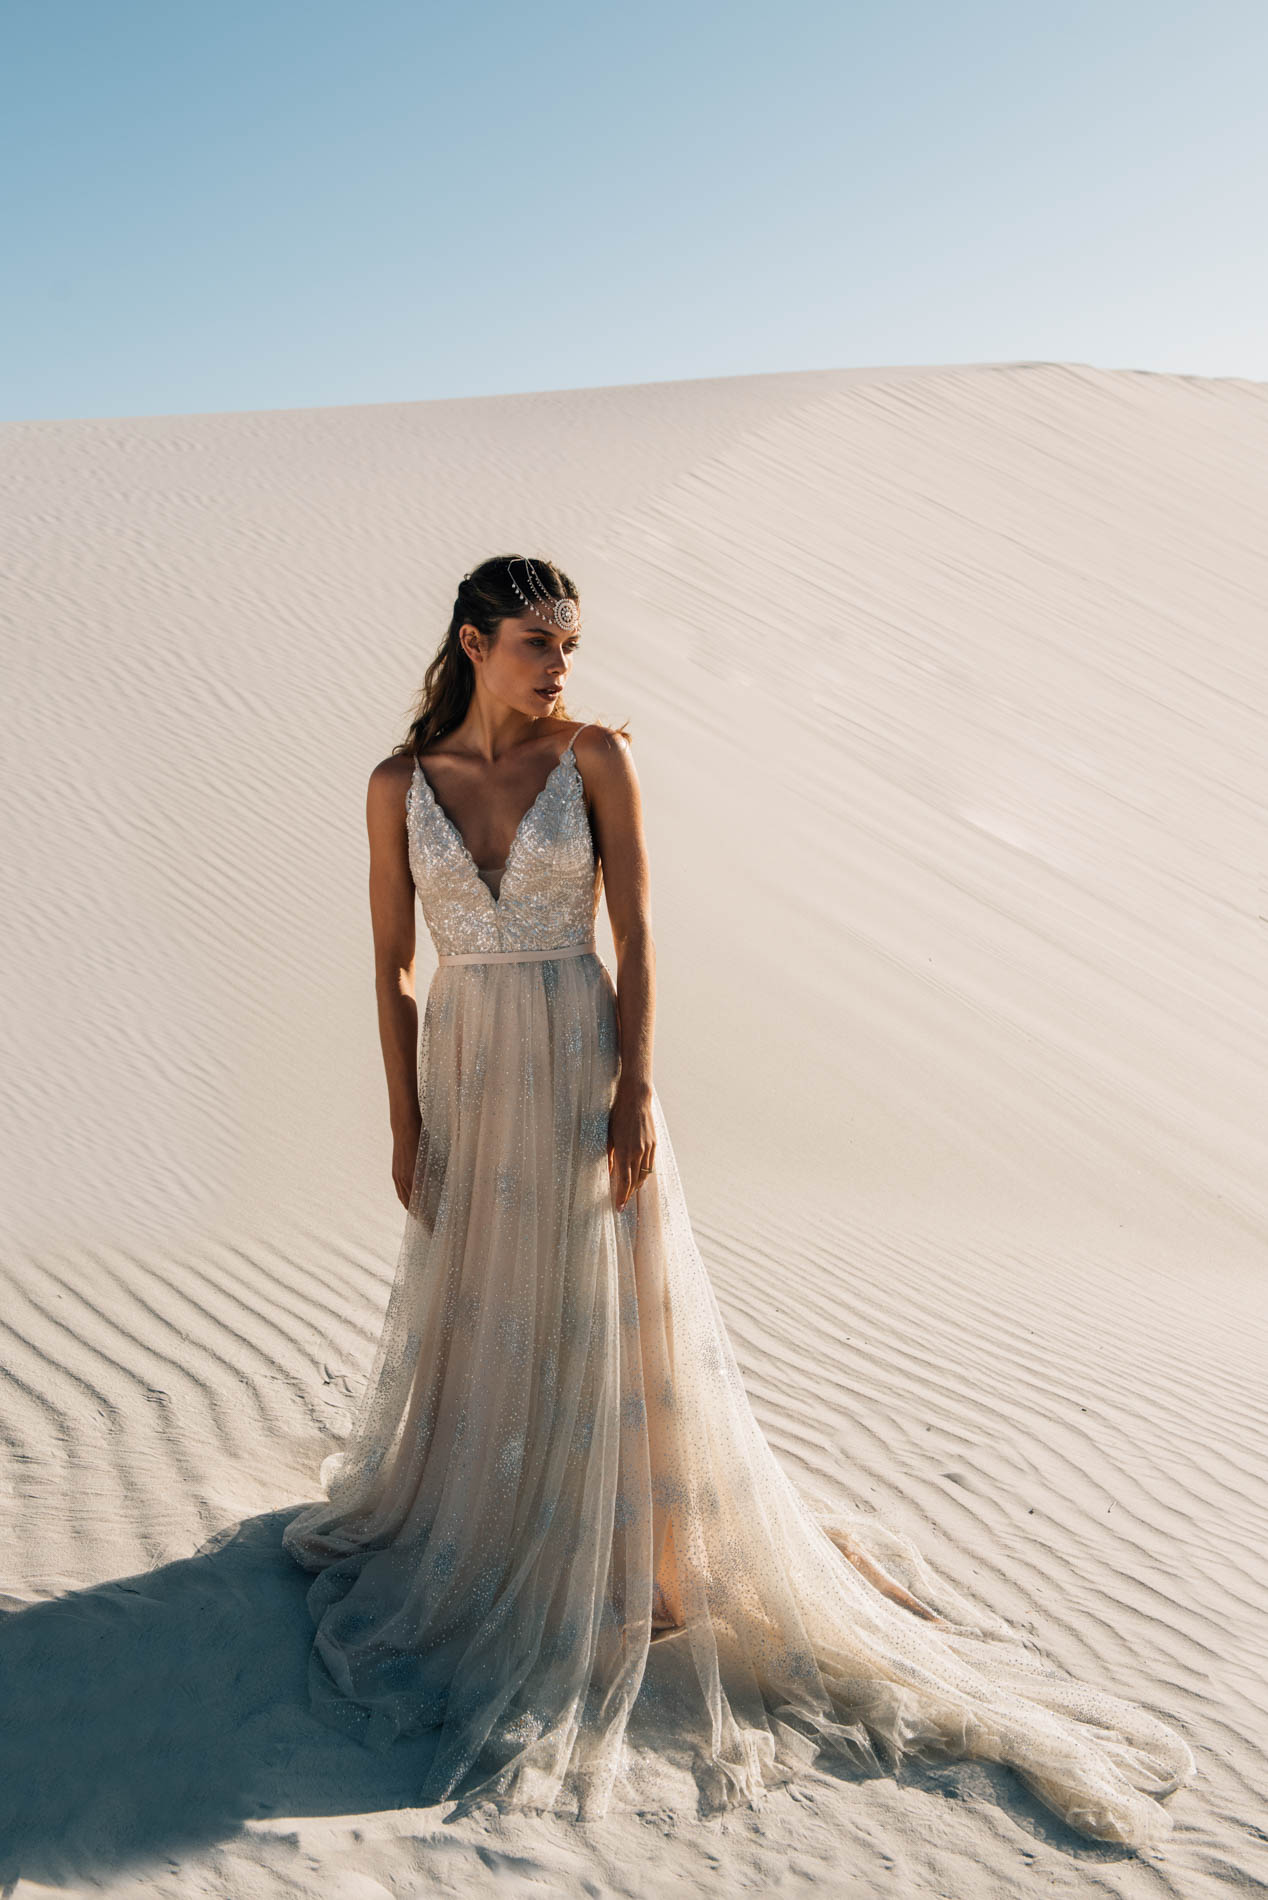 Rumi by Catherine Deane Exclusive bridal event, Hannah Elizabeth Bridal, Botley. Hosting outstanding events for Hampshire Brides